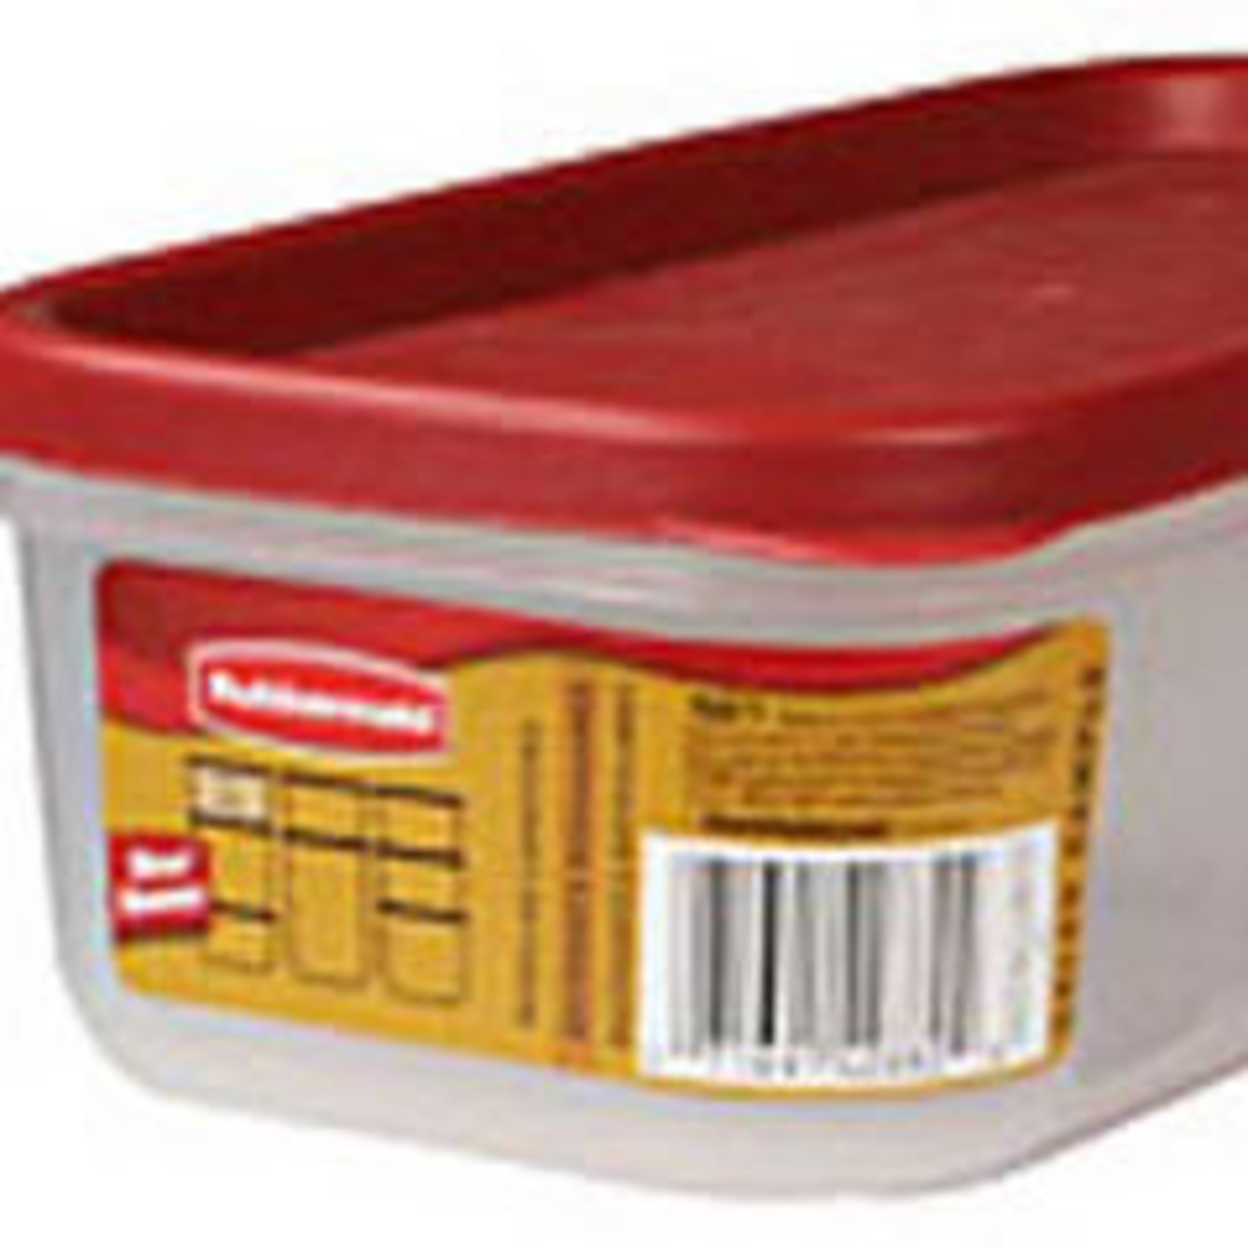 Rubbermaid 1776470 Dry Food Container, 5 Cup 5a3c82d12a00e4785c5b0526